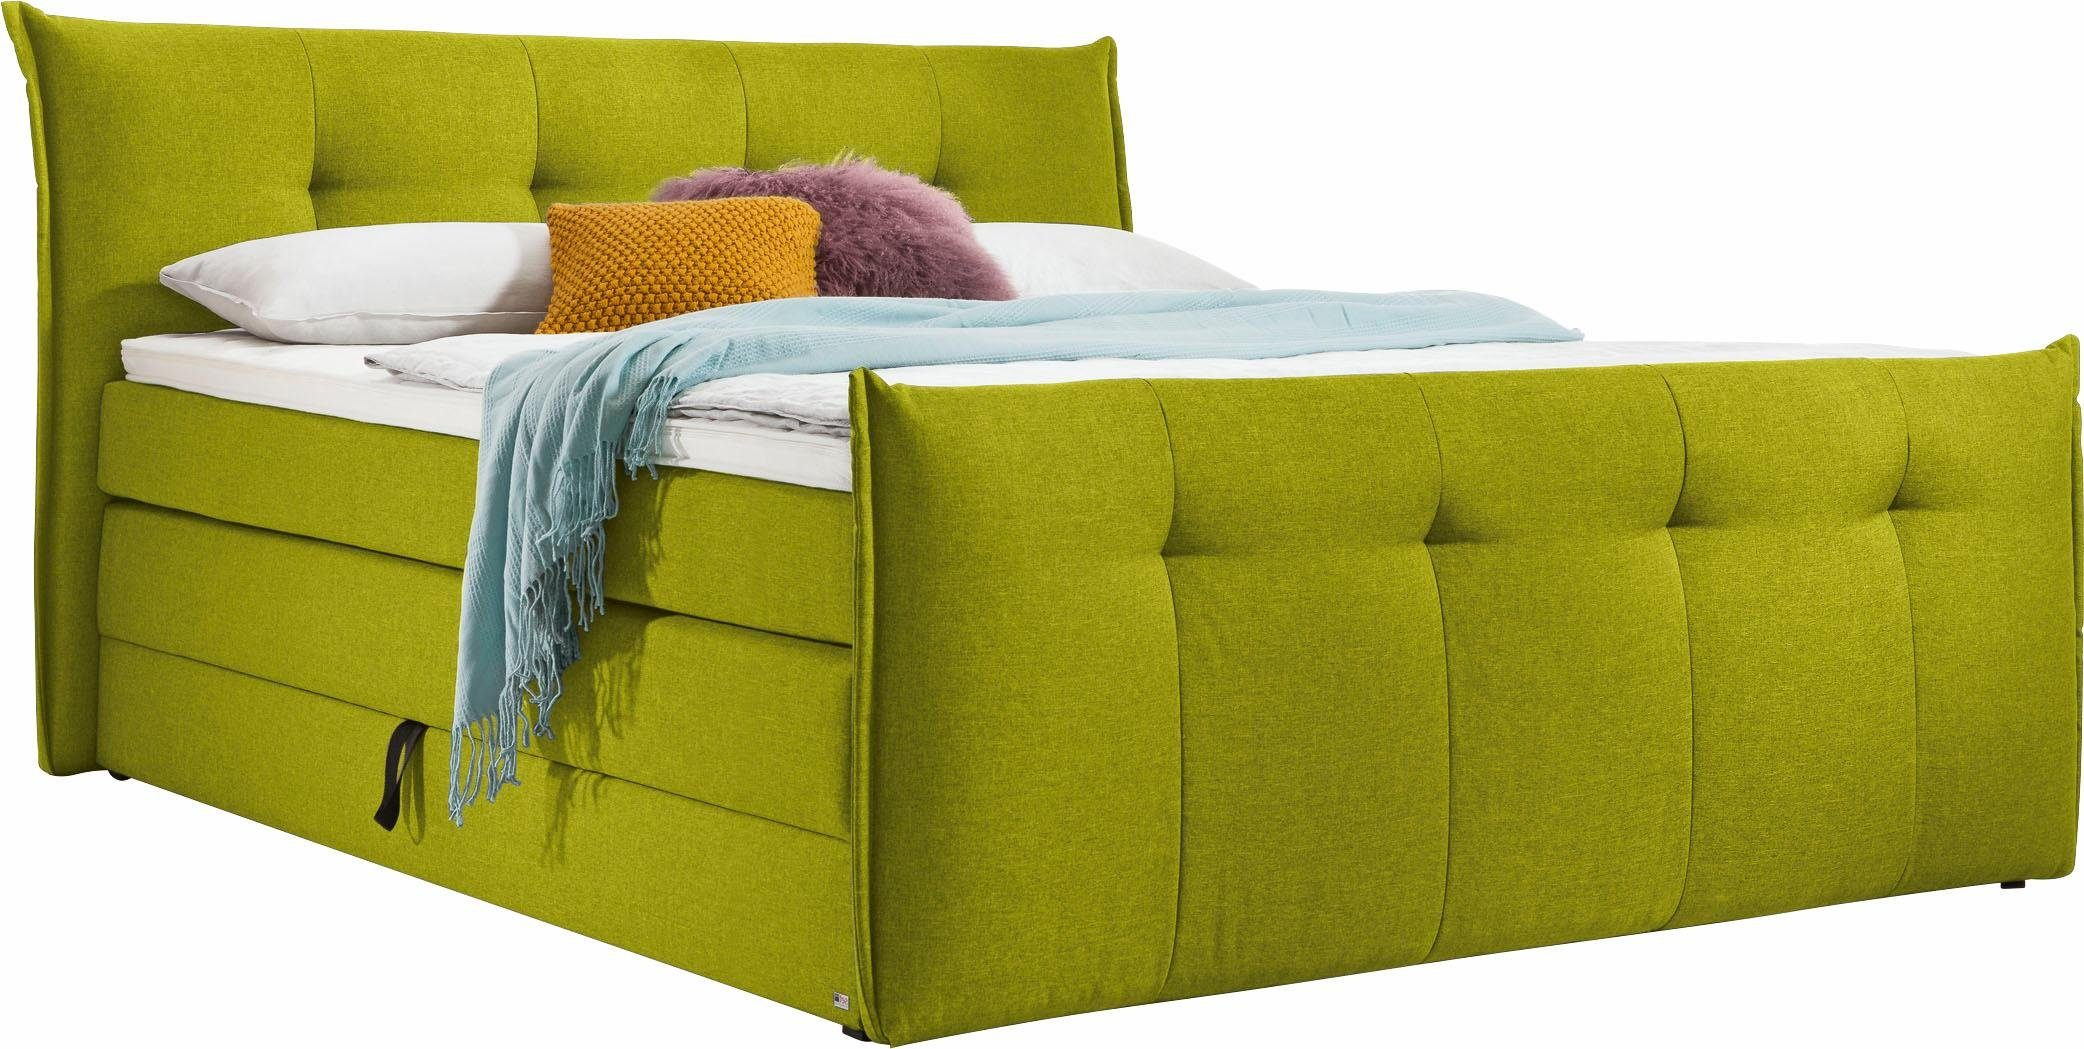 Musterring Boxspringbett Florida in lime